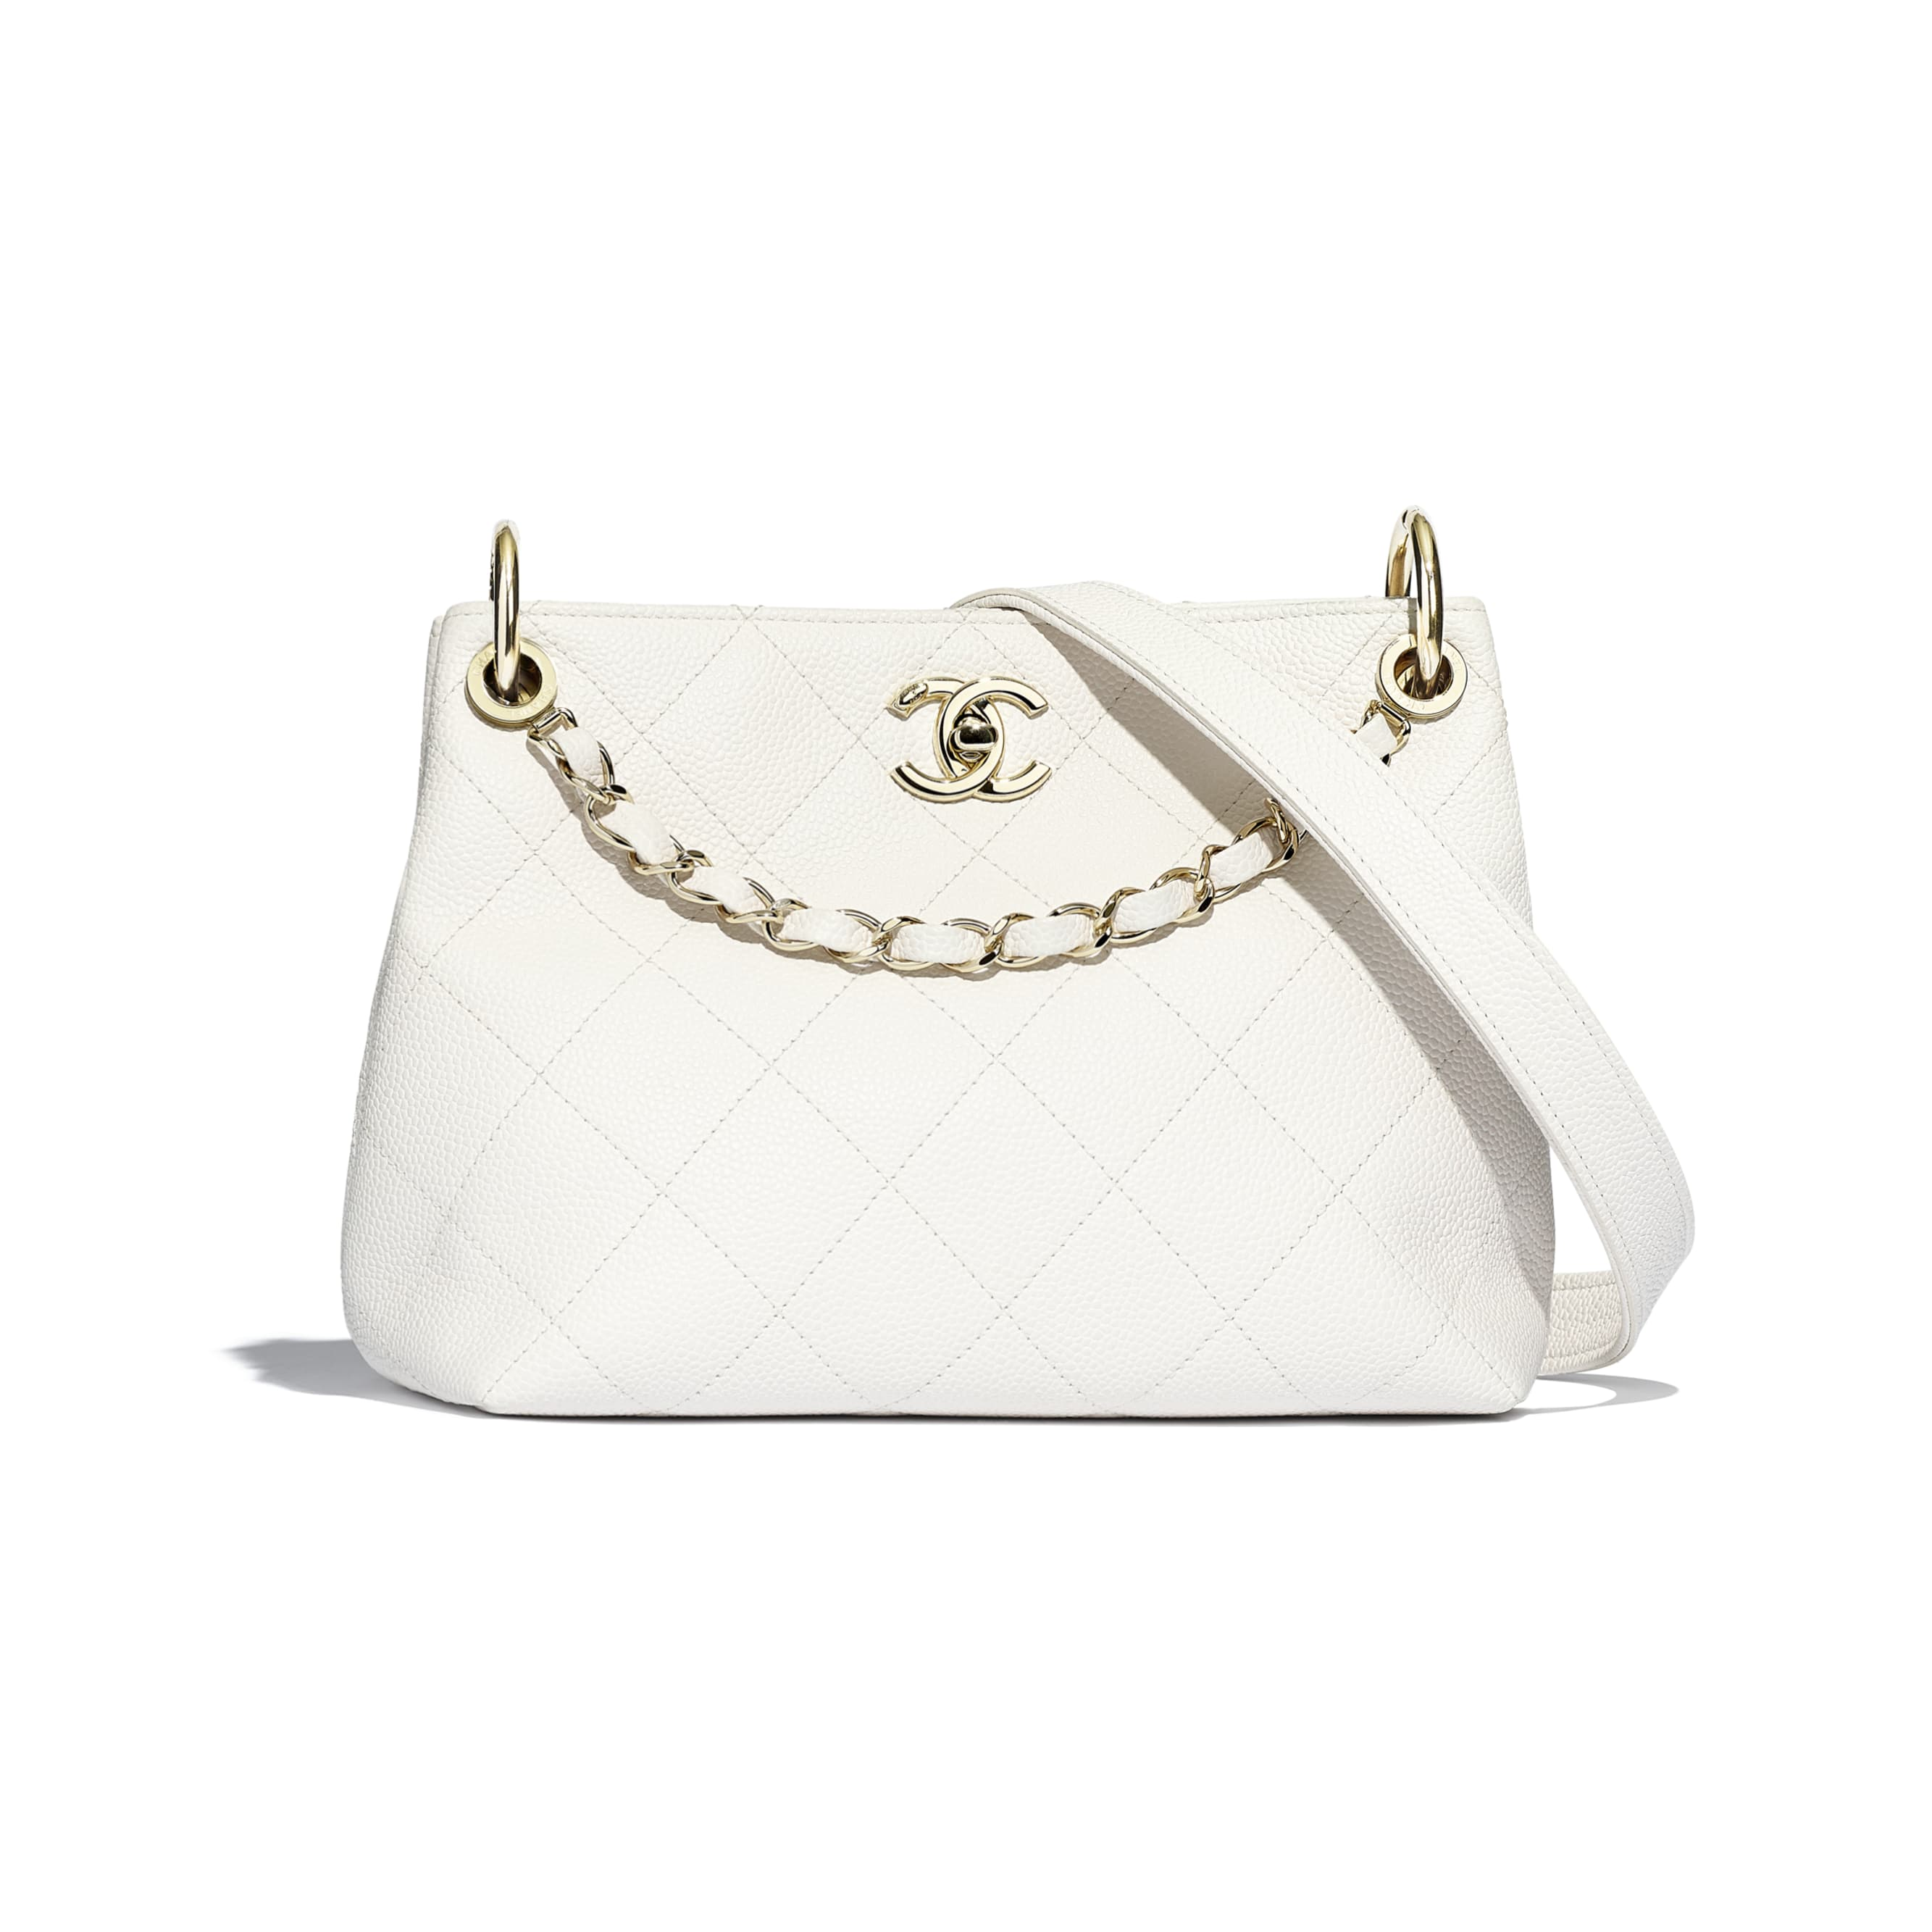 Small Hobo Bag - White - Grained Calfskin & Gold-Tone Metal - CHANEL - Default view - see standard sized version